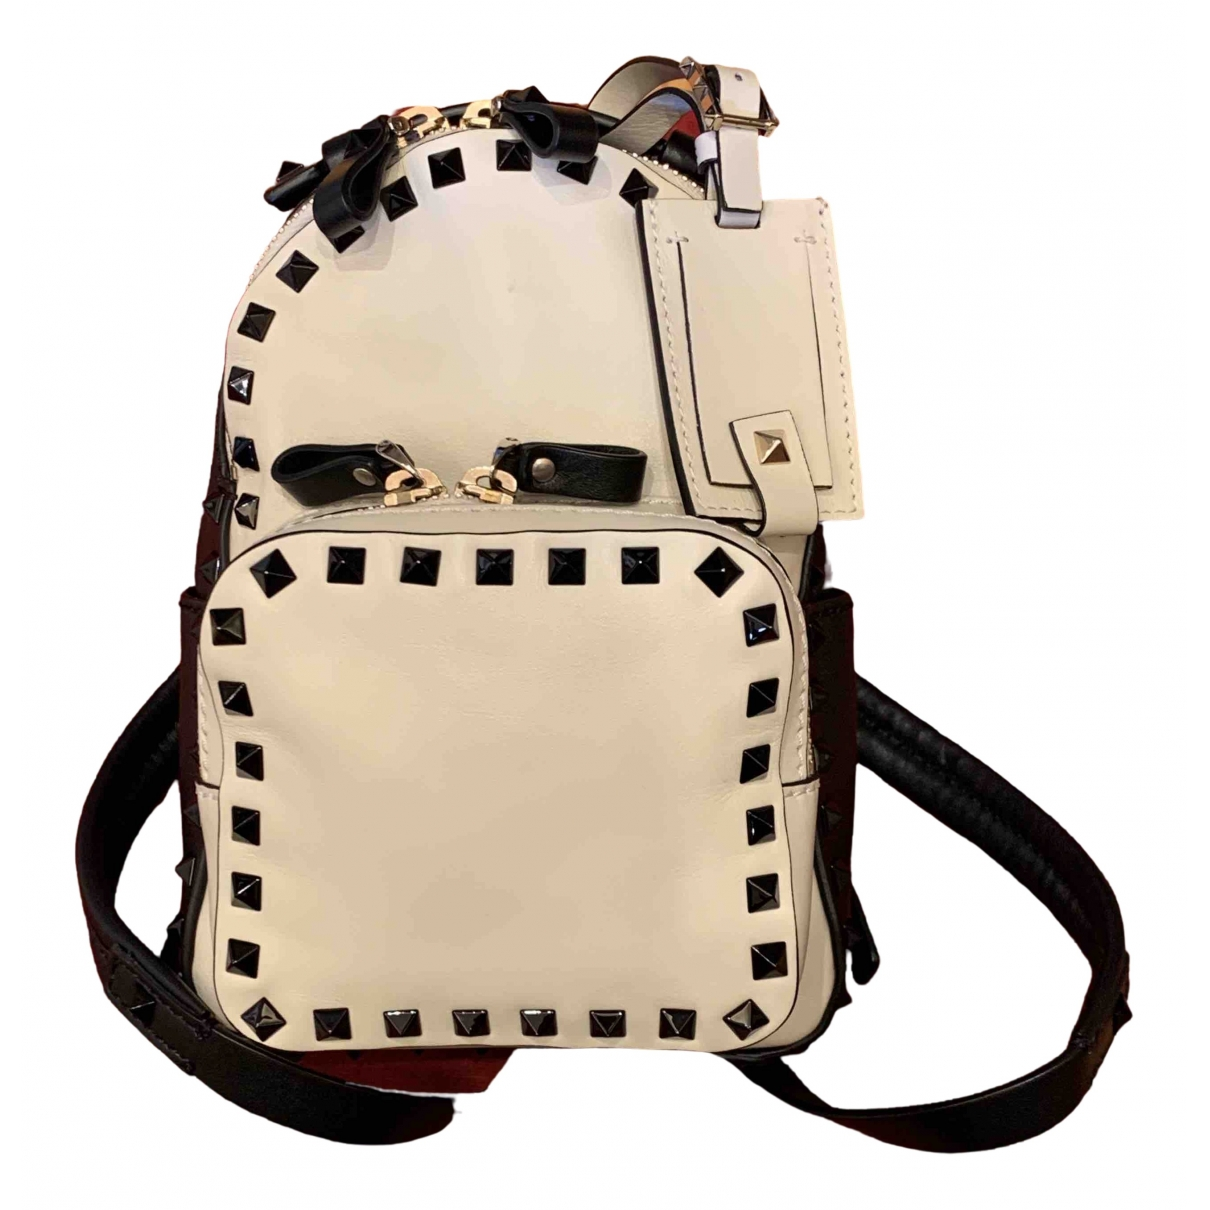 Valentino Garavani Rockstud Black Leather backpack for Women \N